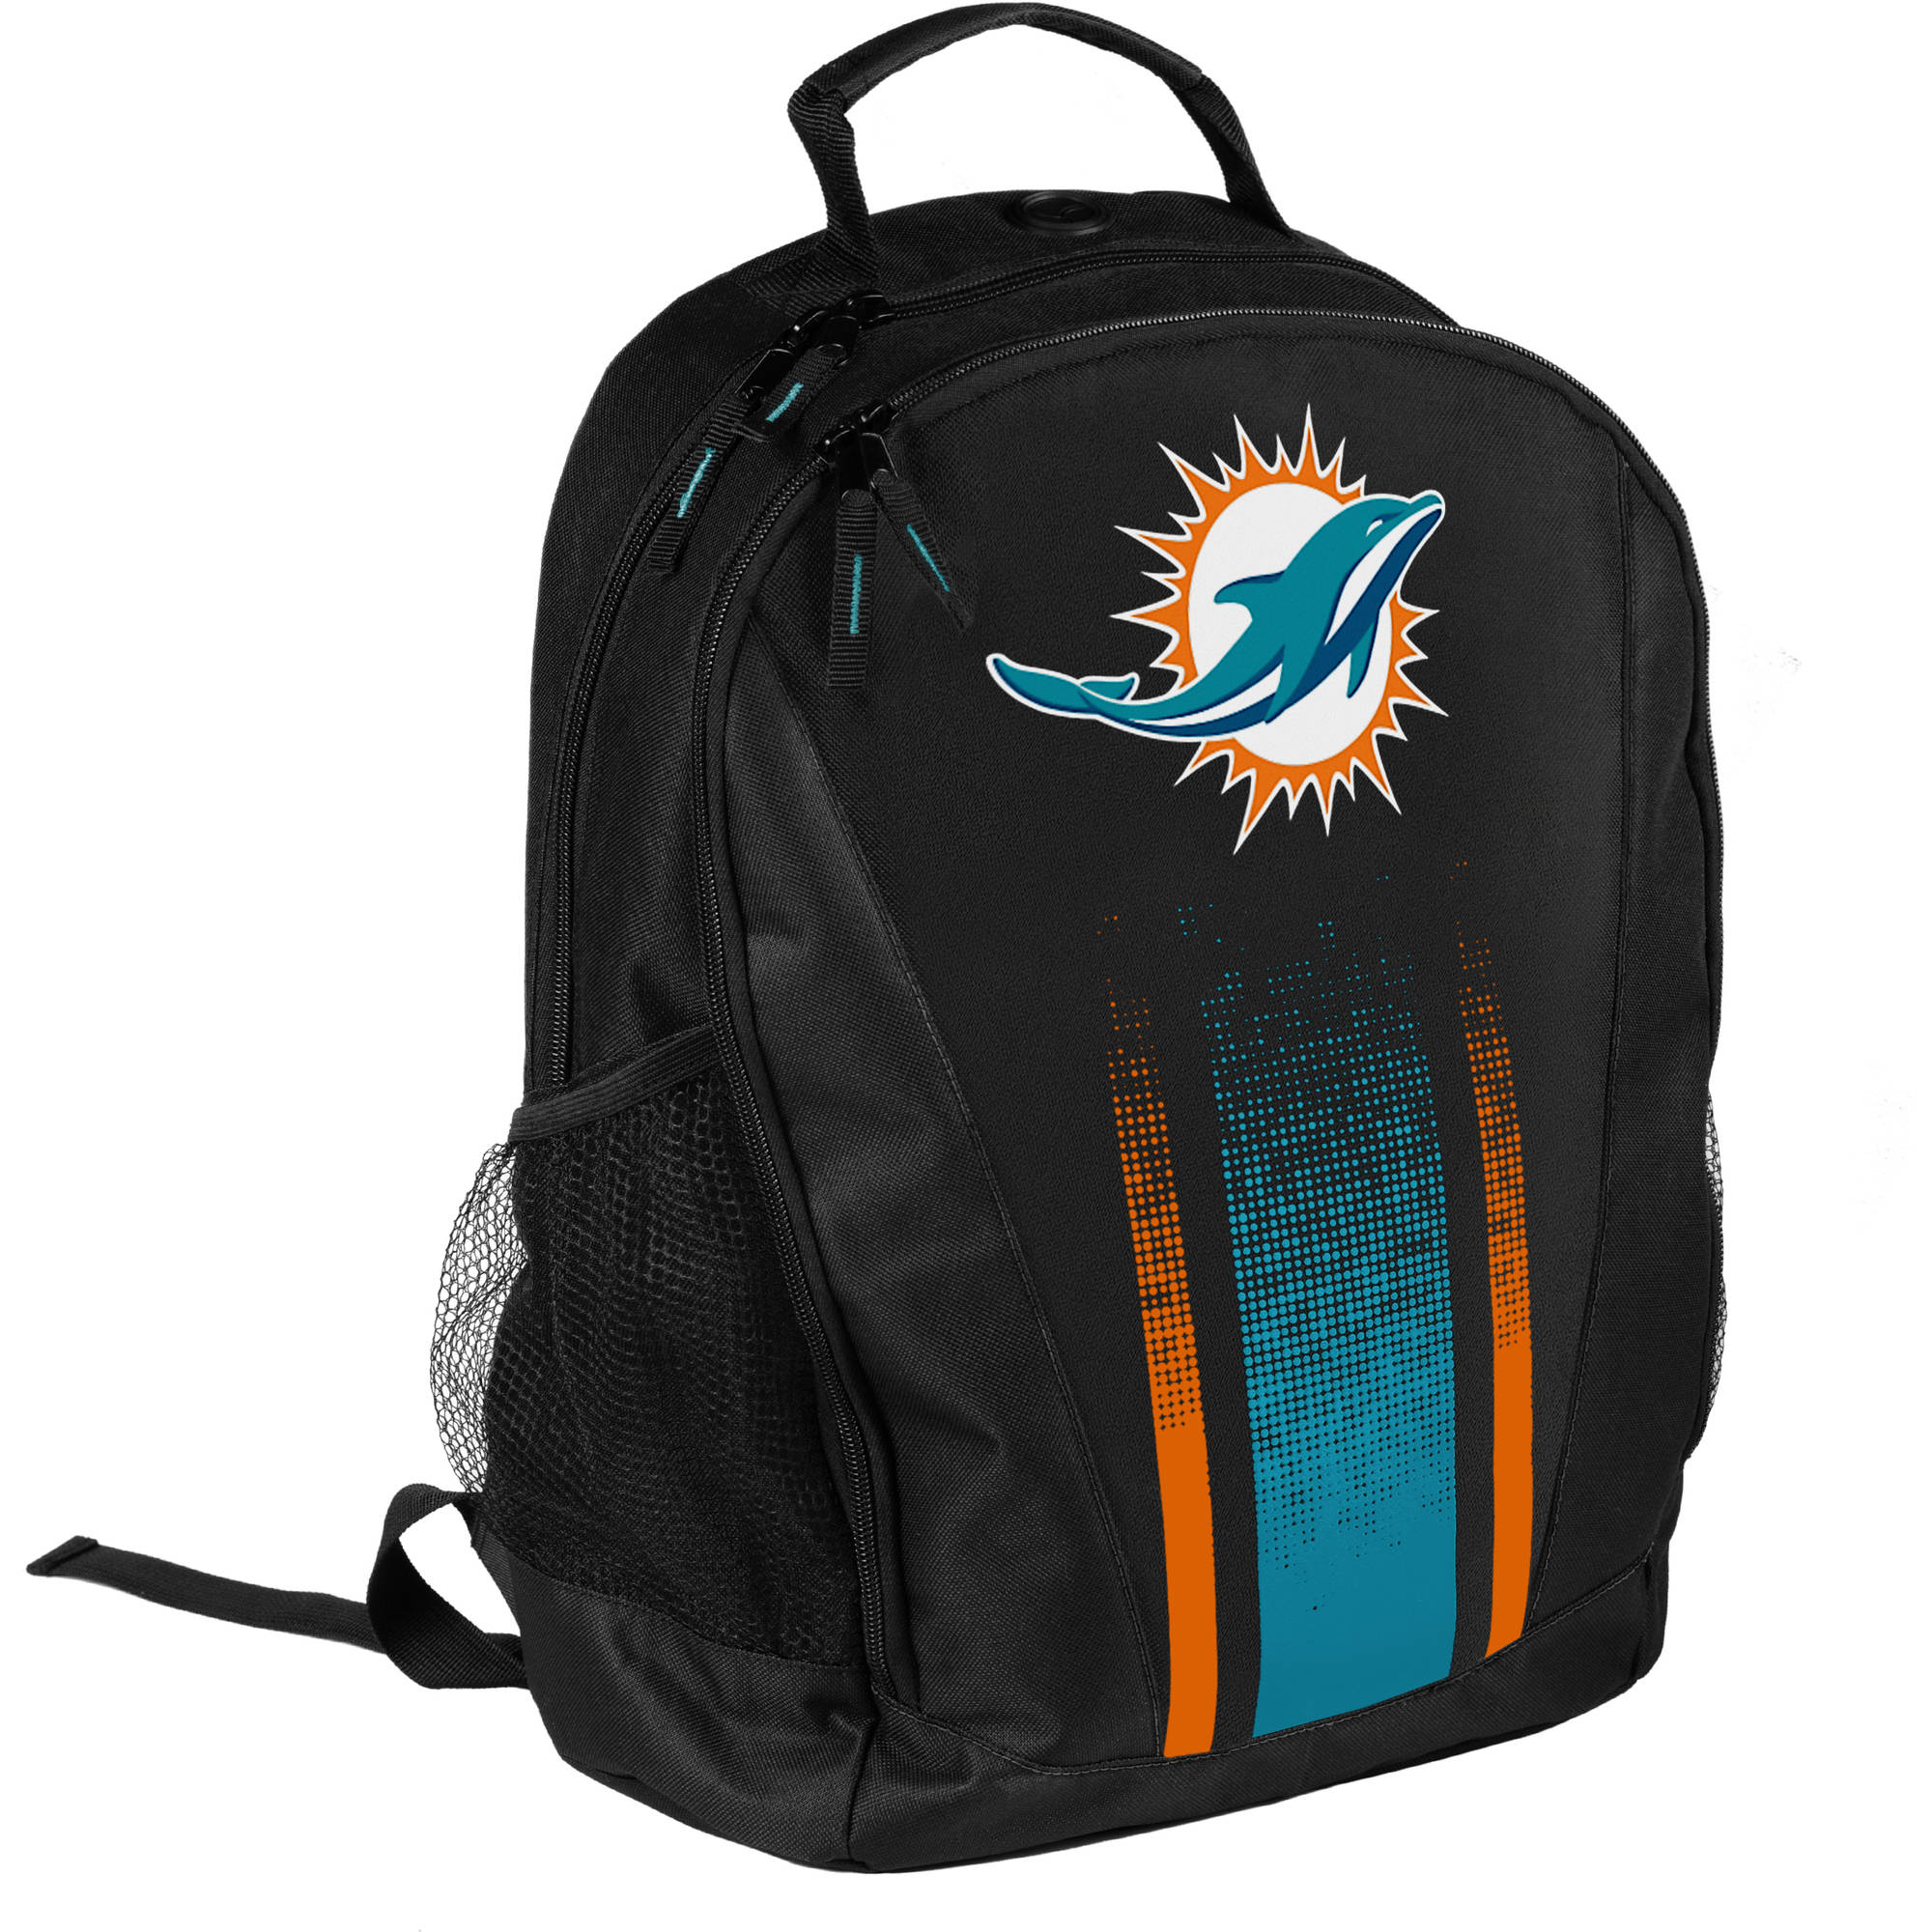 Forever Collectibles NFL Miami Dolphins Prime Backpack